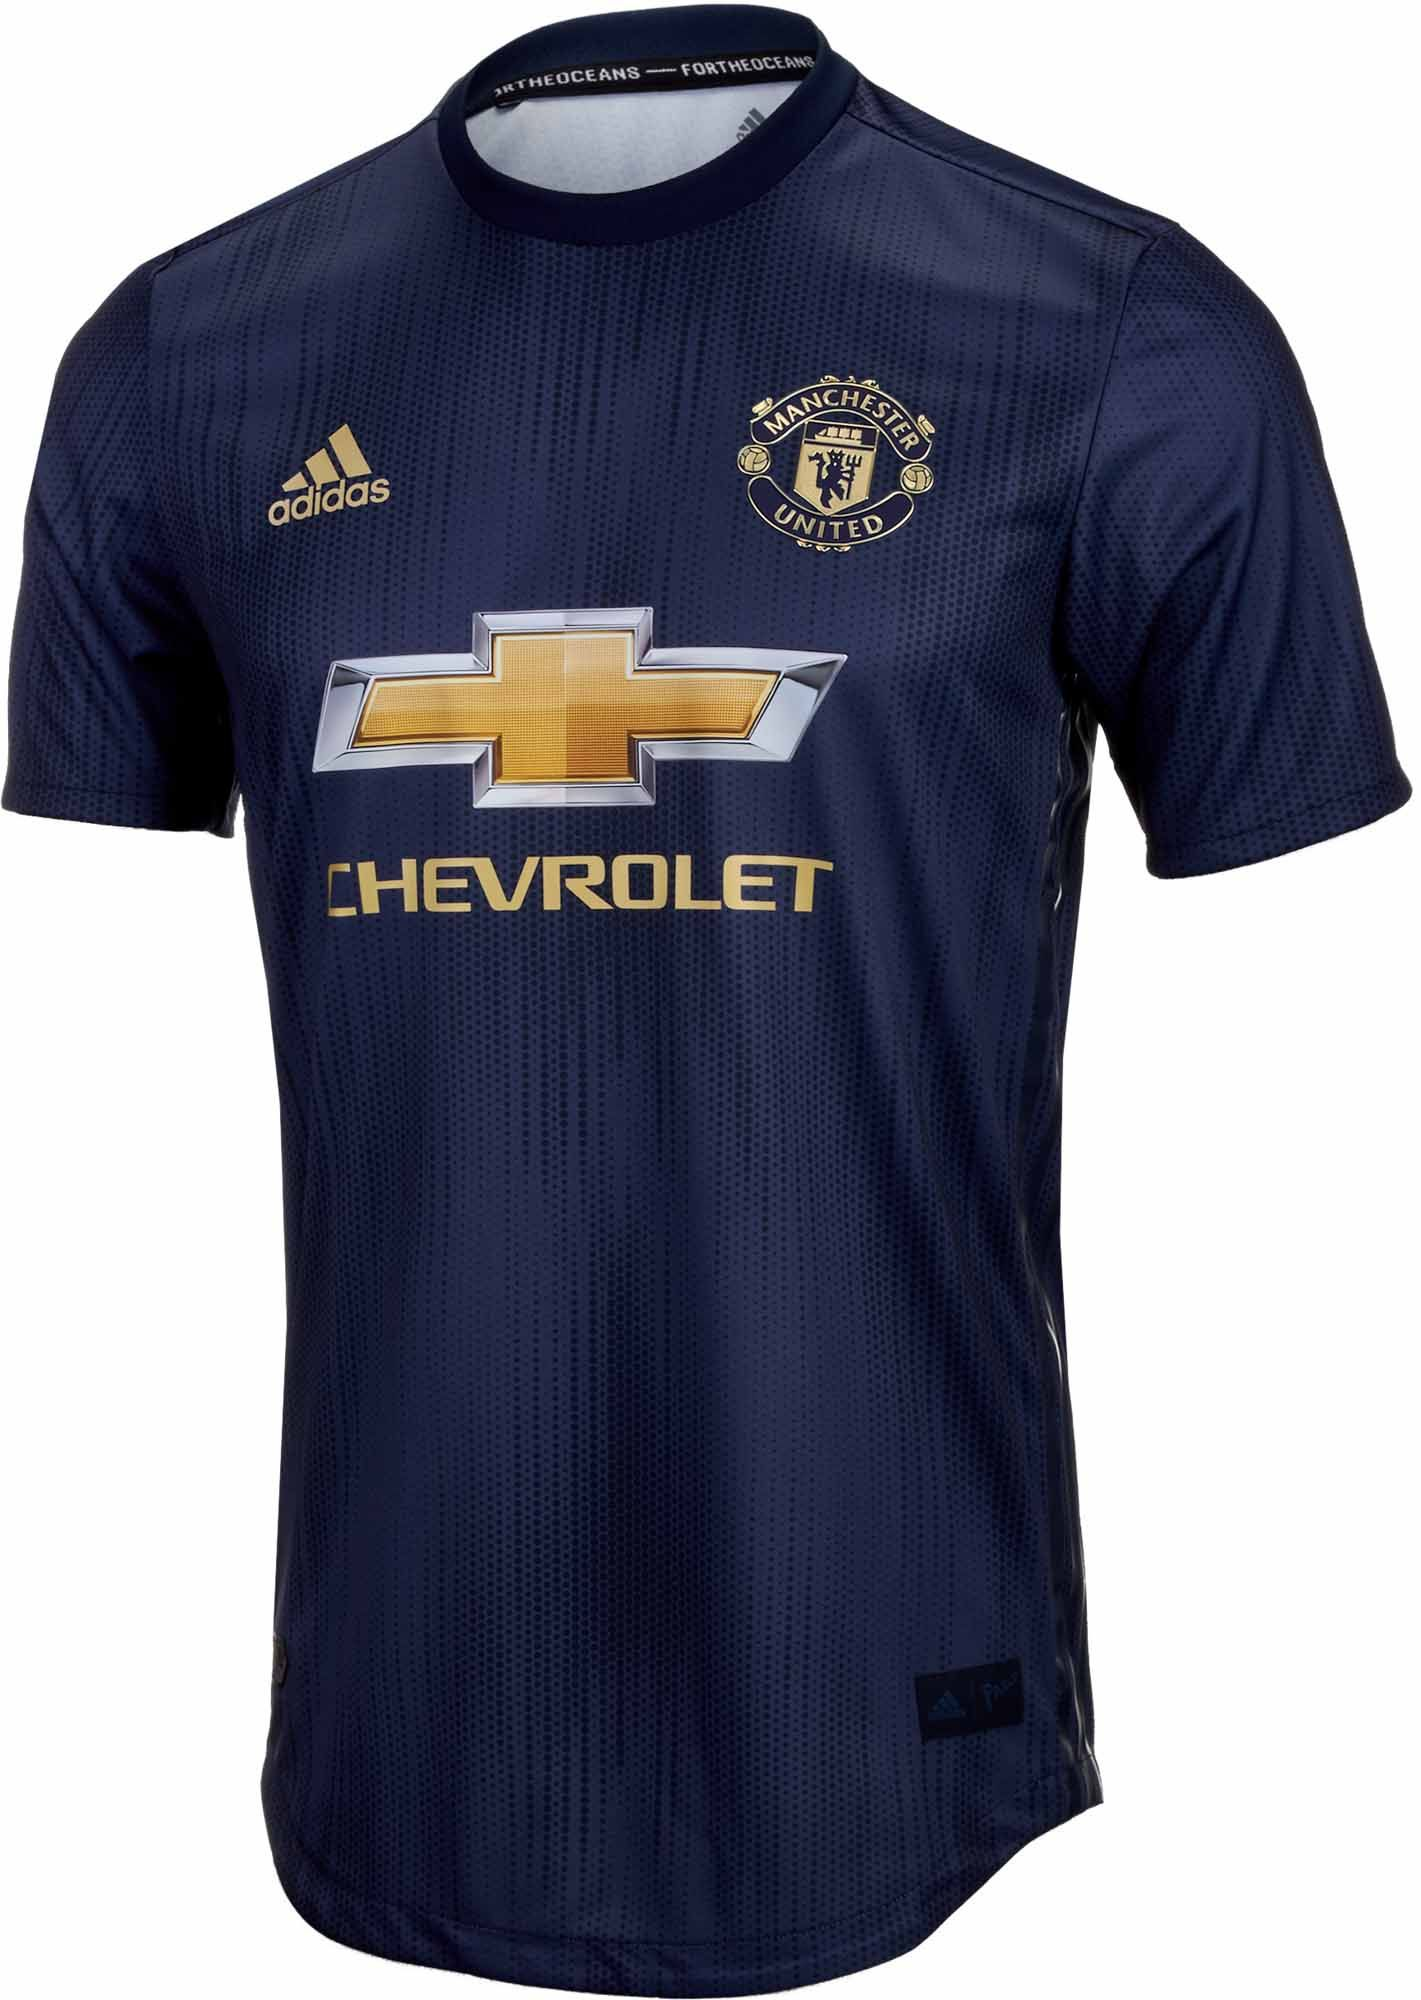 Adidas Manchester United 3rd Authentic Jersey 2018 19 Soccerpro Manchester United Cycling Jersey Design Manchester United Away Kit